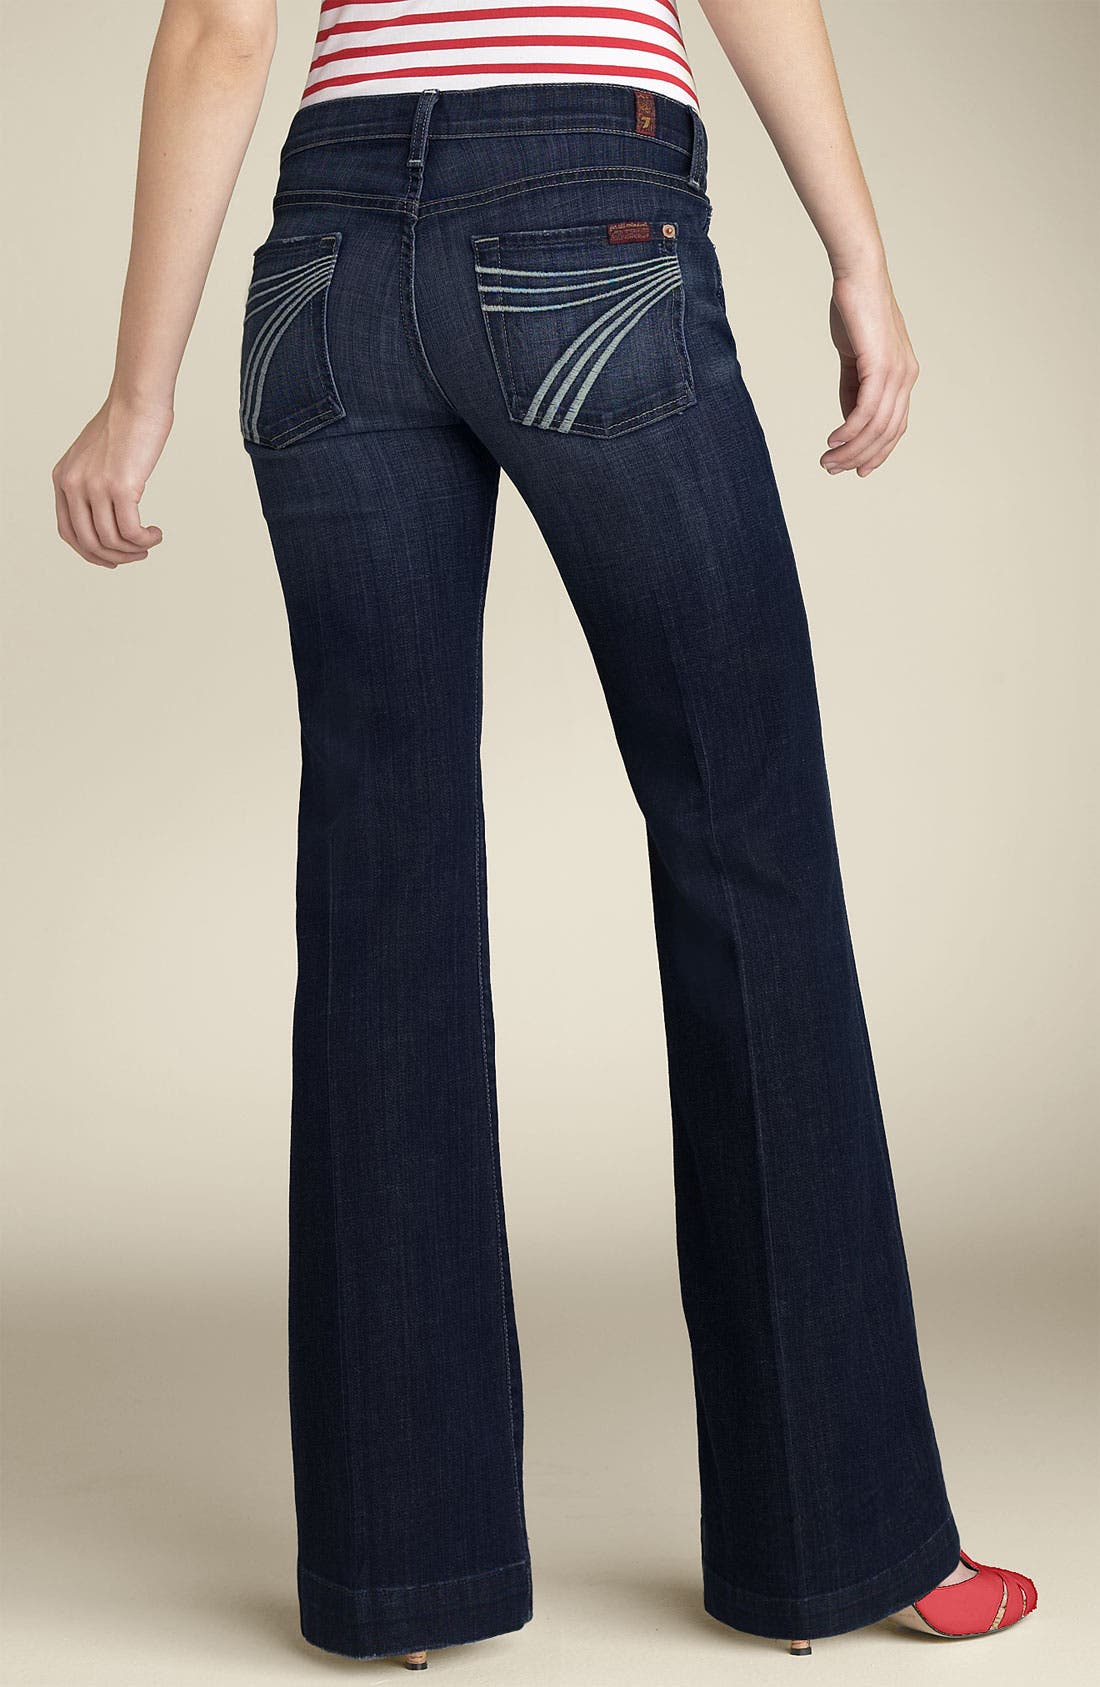 Main Image - 7 For All Mankind® 'Dojo' Stretch Trouser Jeans (Indigo Wash) (Short Inseam)